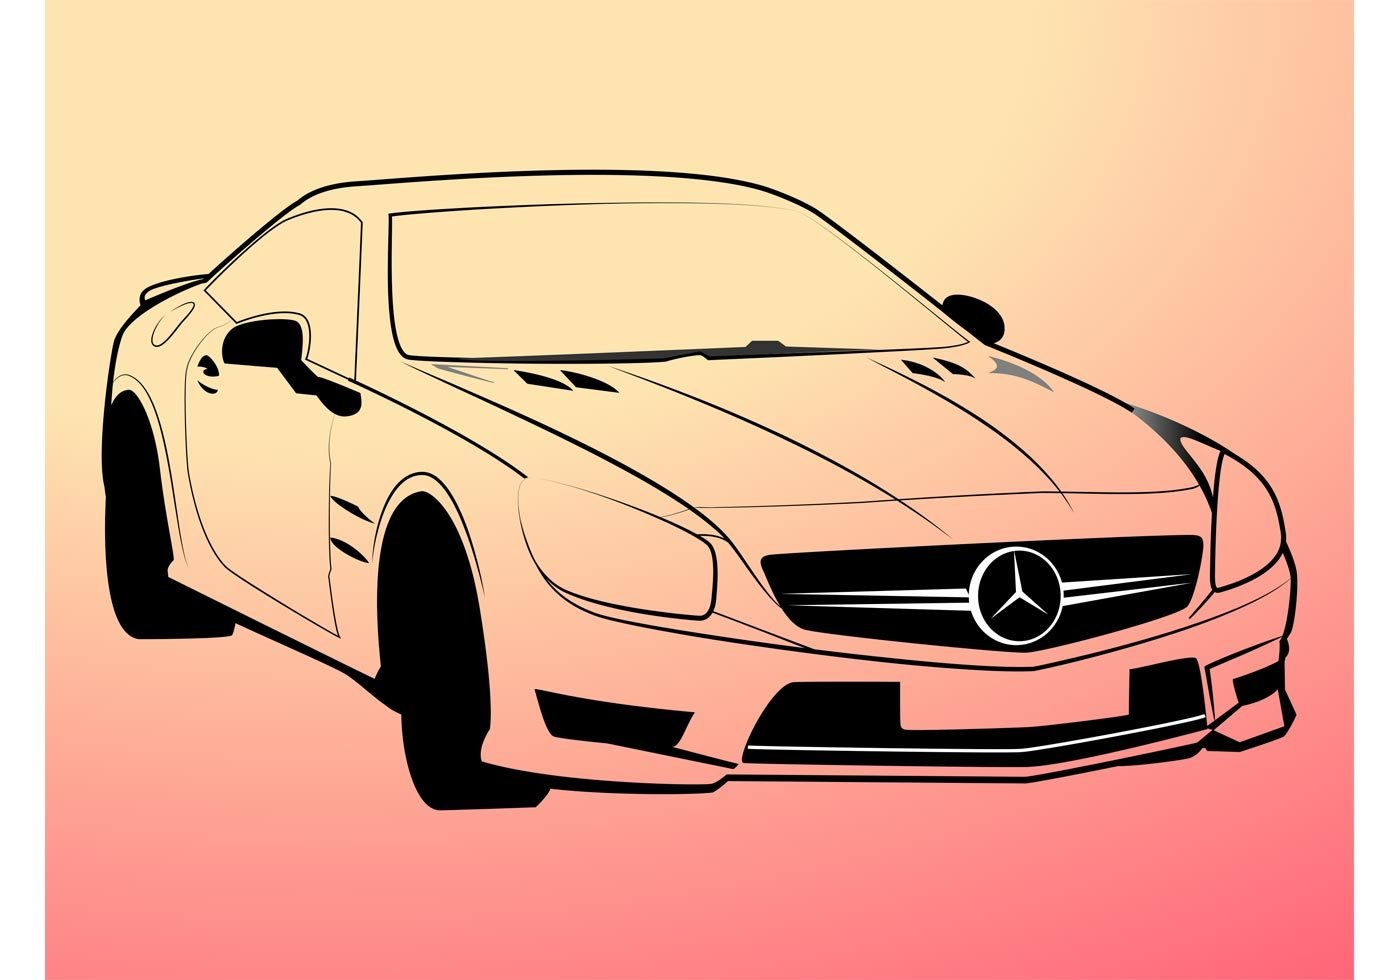 Latest Mercedes Benz Outlines Download Free Vector Art Stock Free Download